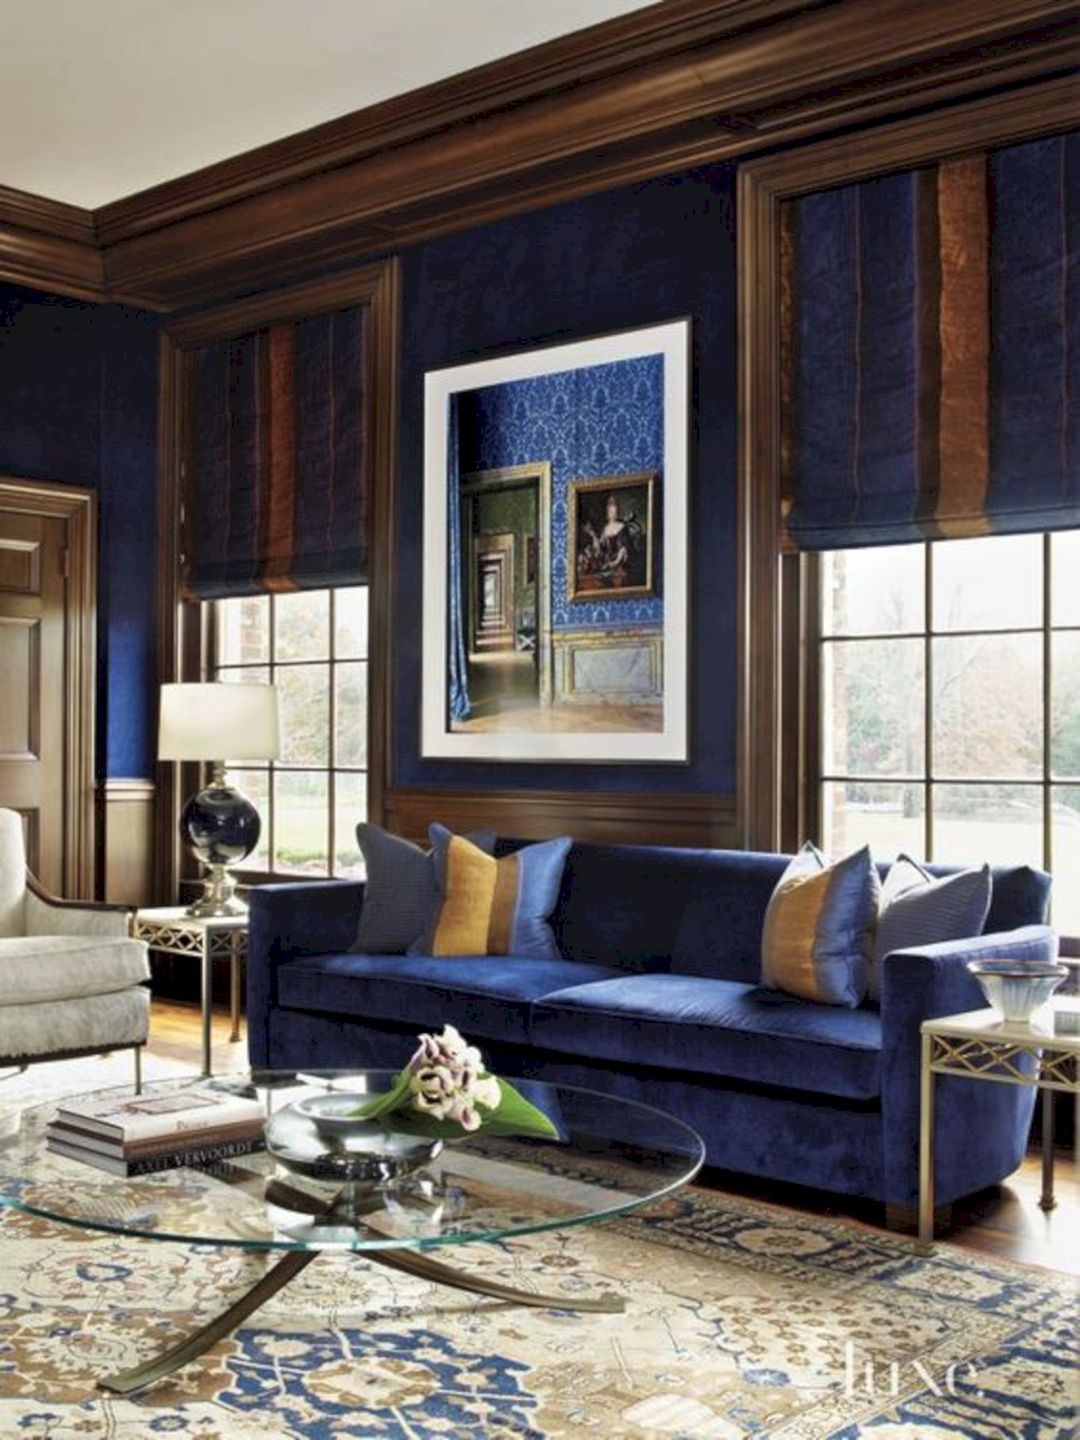 Royal Blue And Brown Living Room Royal Blue And Brown Living Room Design Ideas And Photos Brown Living Room Brown Living Room Decor Blue Living Room Color